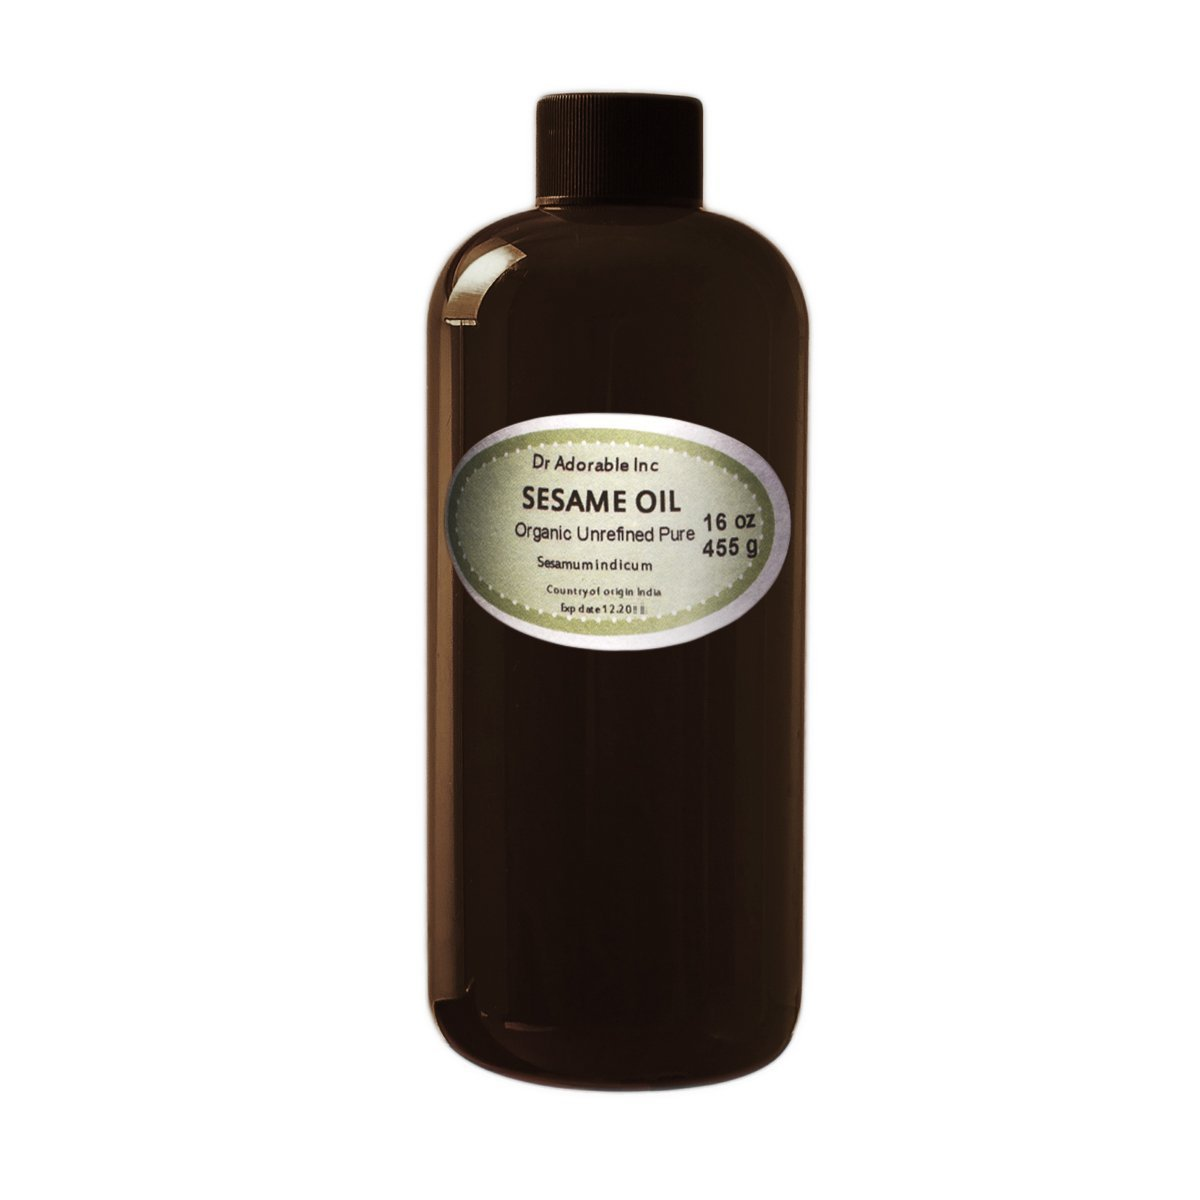 Sesame OIL Unrefined Cold Pressed 3 Special sale item Organic Sales of SALE items from new works Pints 48 Oz